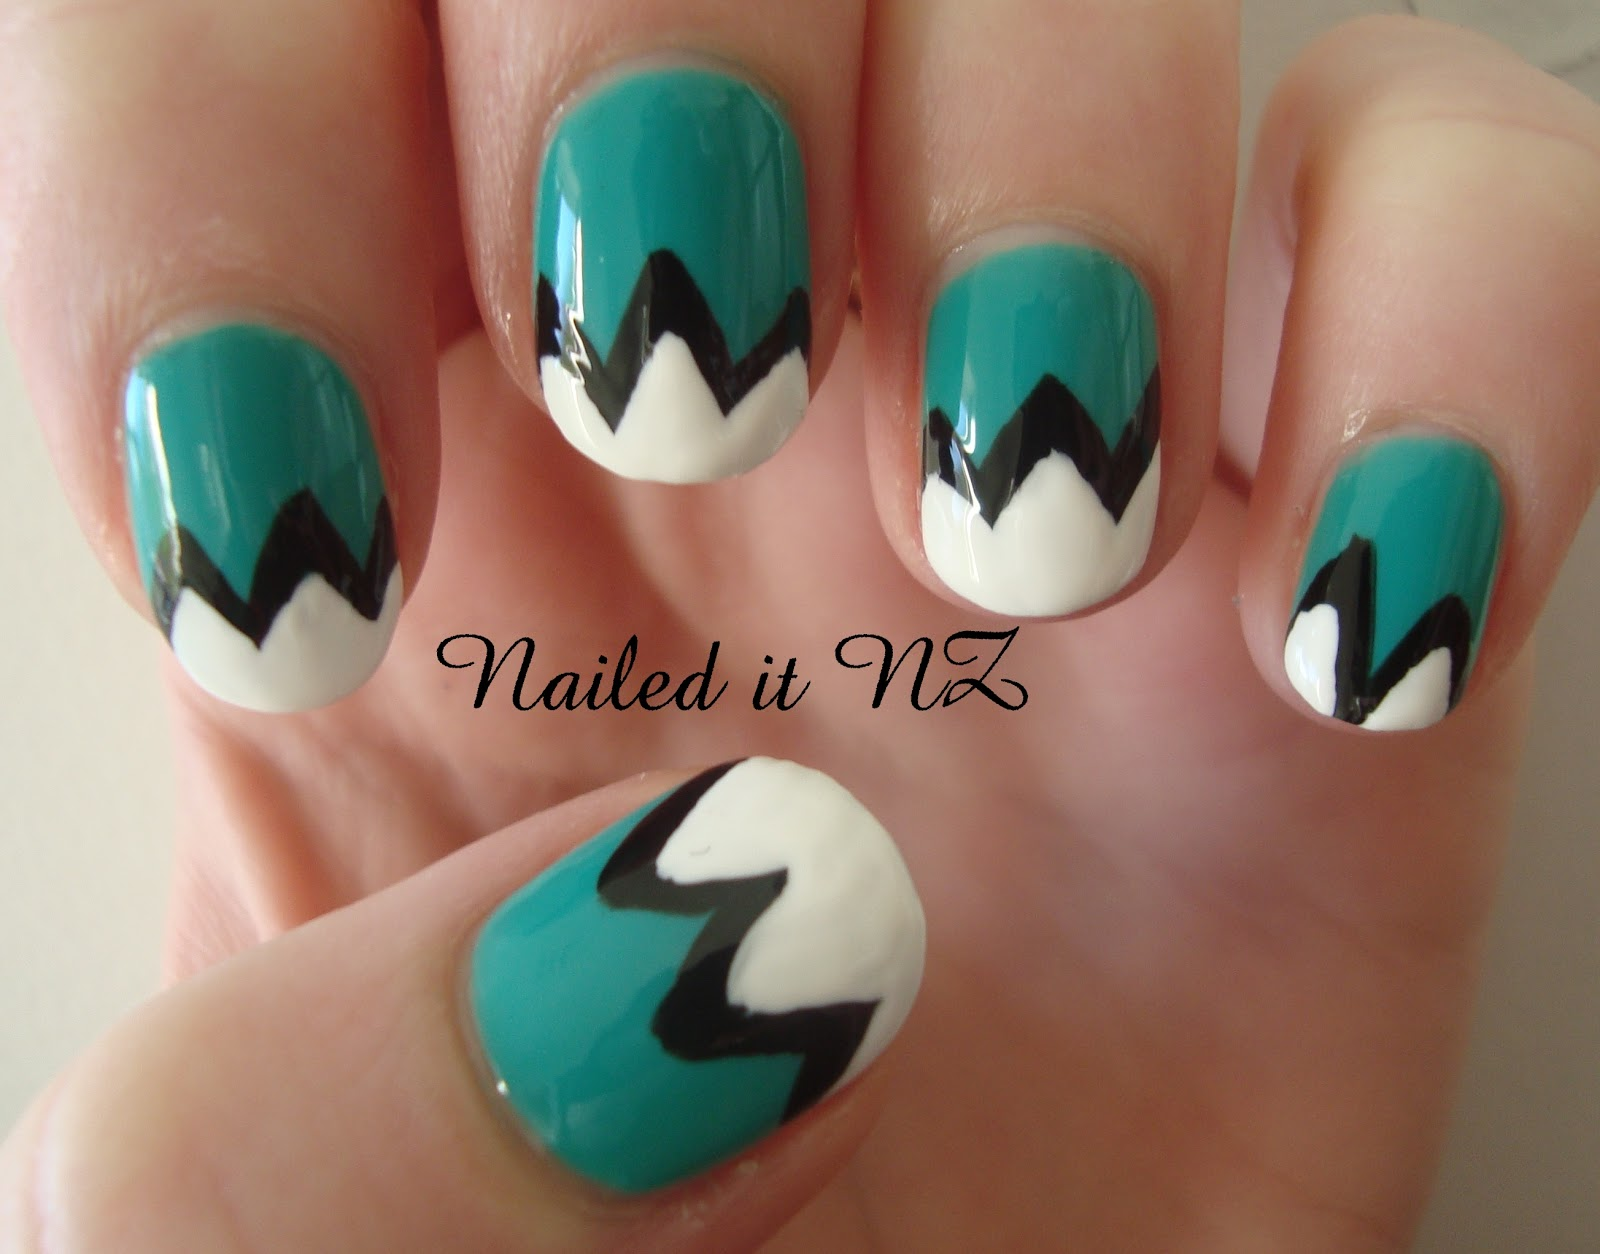 Nailed It NZ: Nail art for short nails #1: Mountain Nails